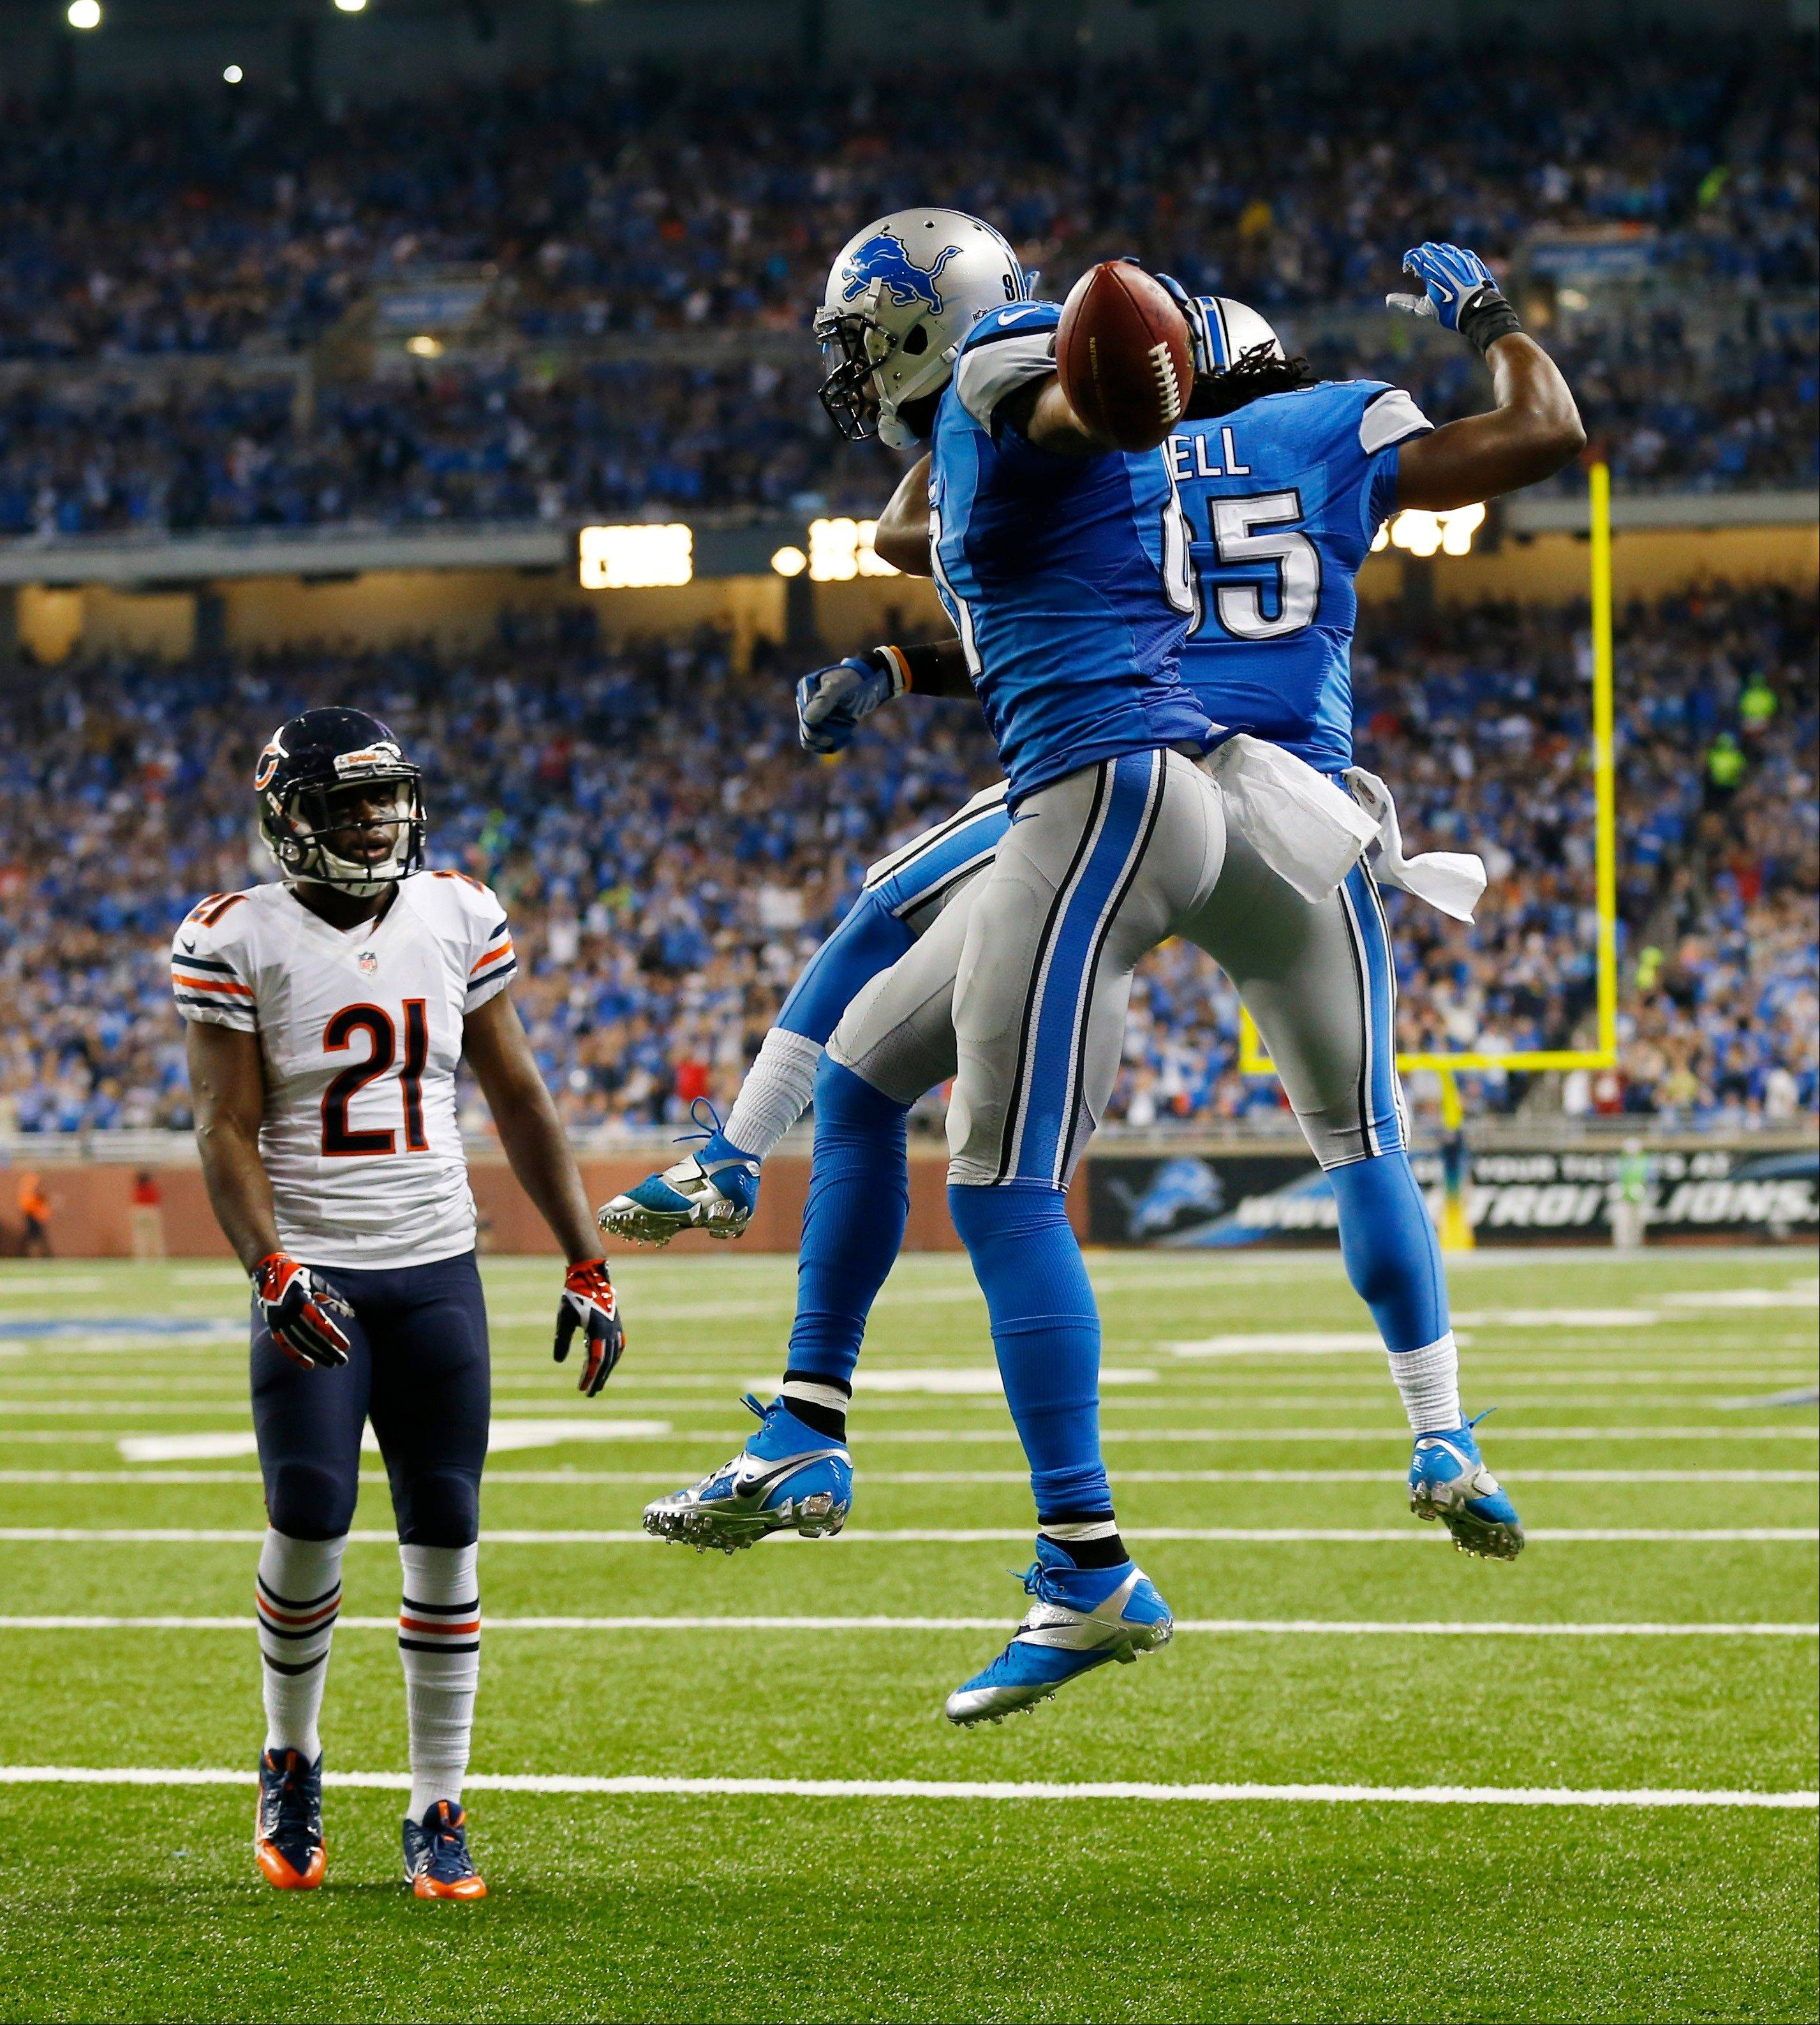 Detroit Lions wide receiver Calvin Johnson (81) and teammate running back Joique Bell (35) celebrate Johnson�s touchdown as Chicago Bears strong safety Major Wright (21) look on during the second quarter of an NFL football game at Ford Field in Detroit, Sunday, Sept. 29, 2013.